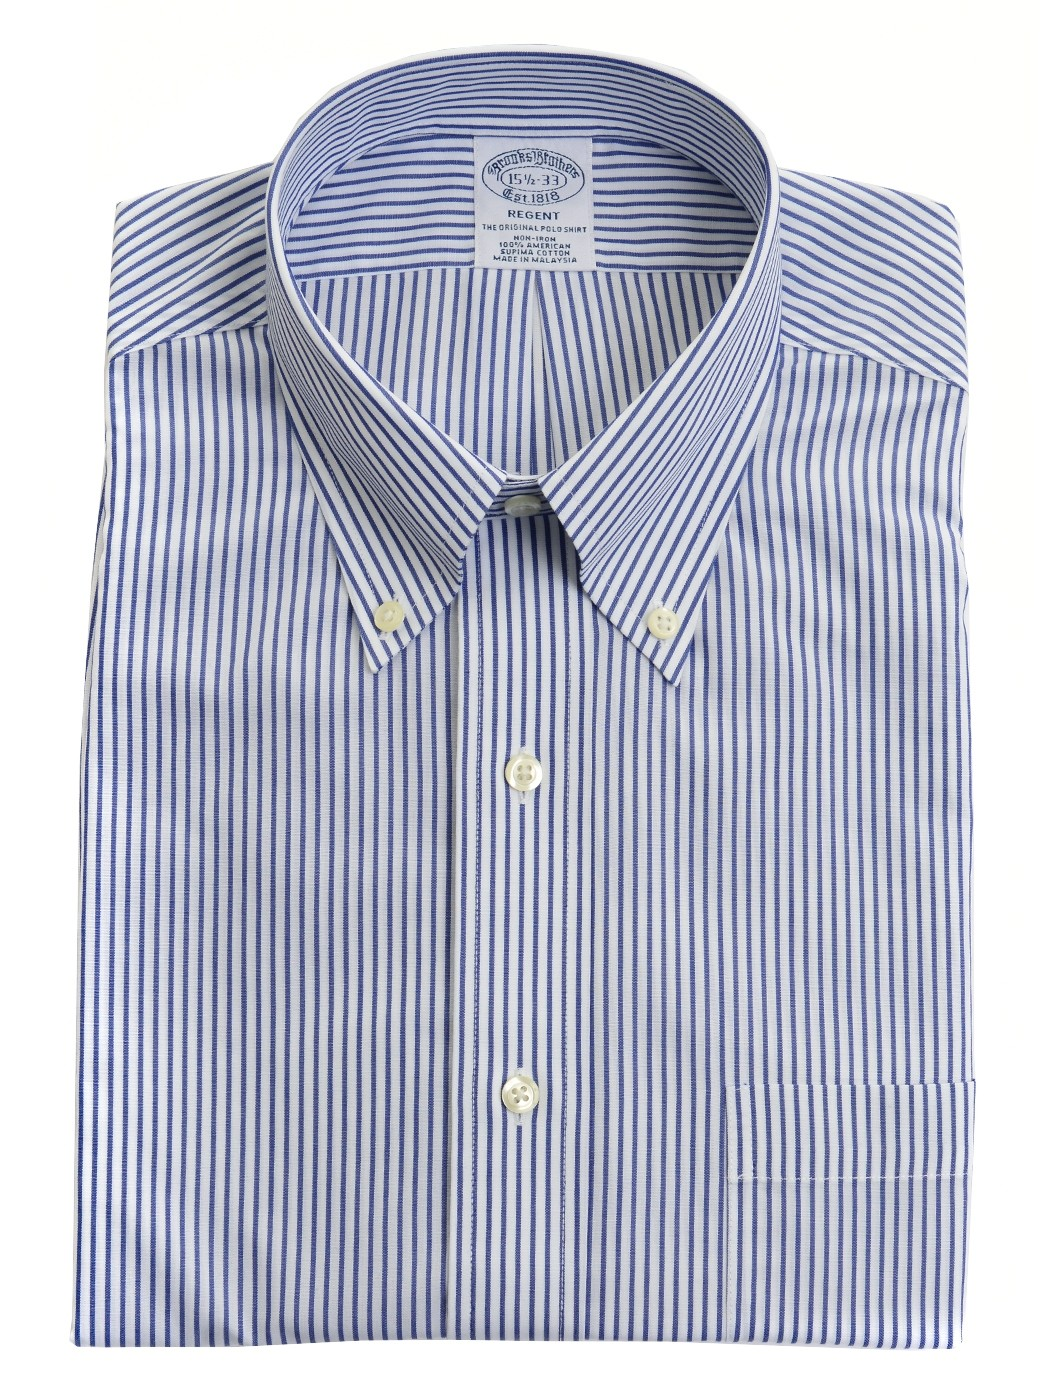 BROOKS BROTHERS 100048297